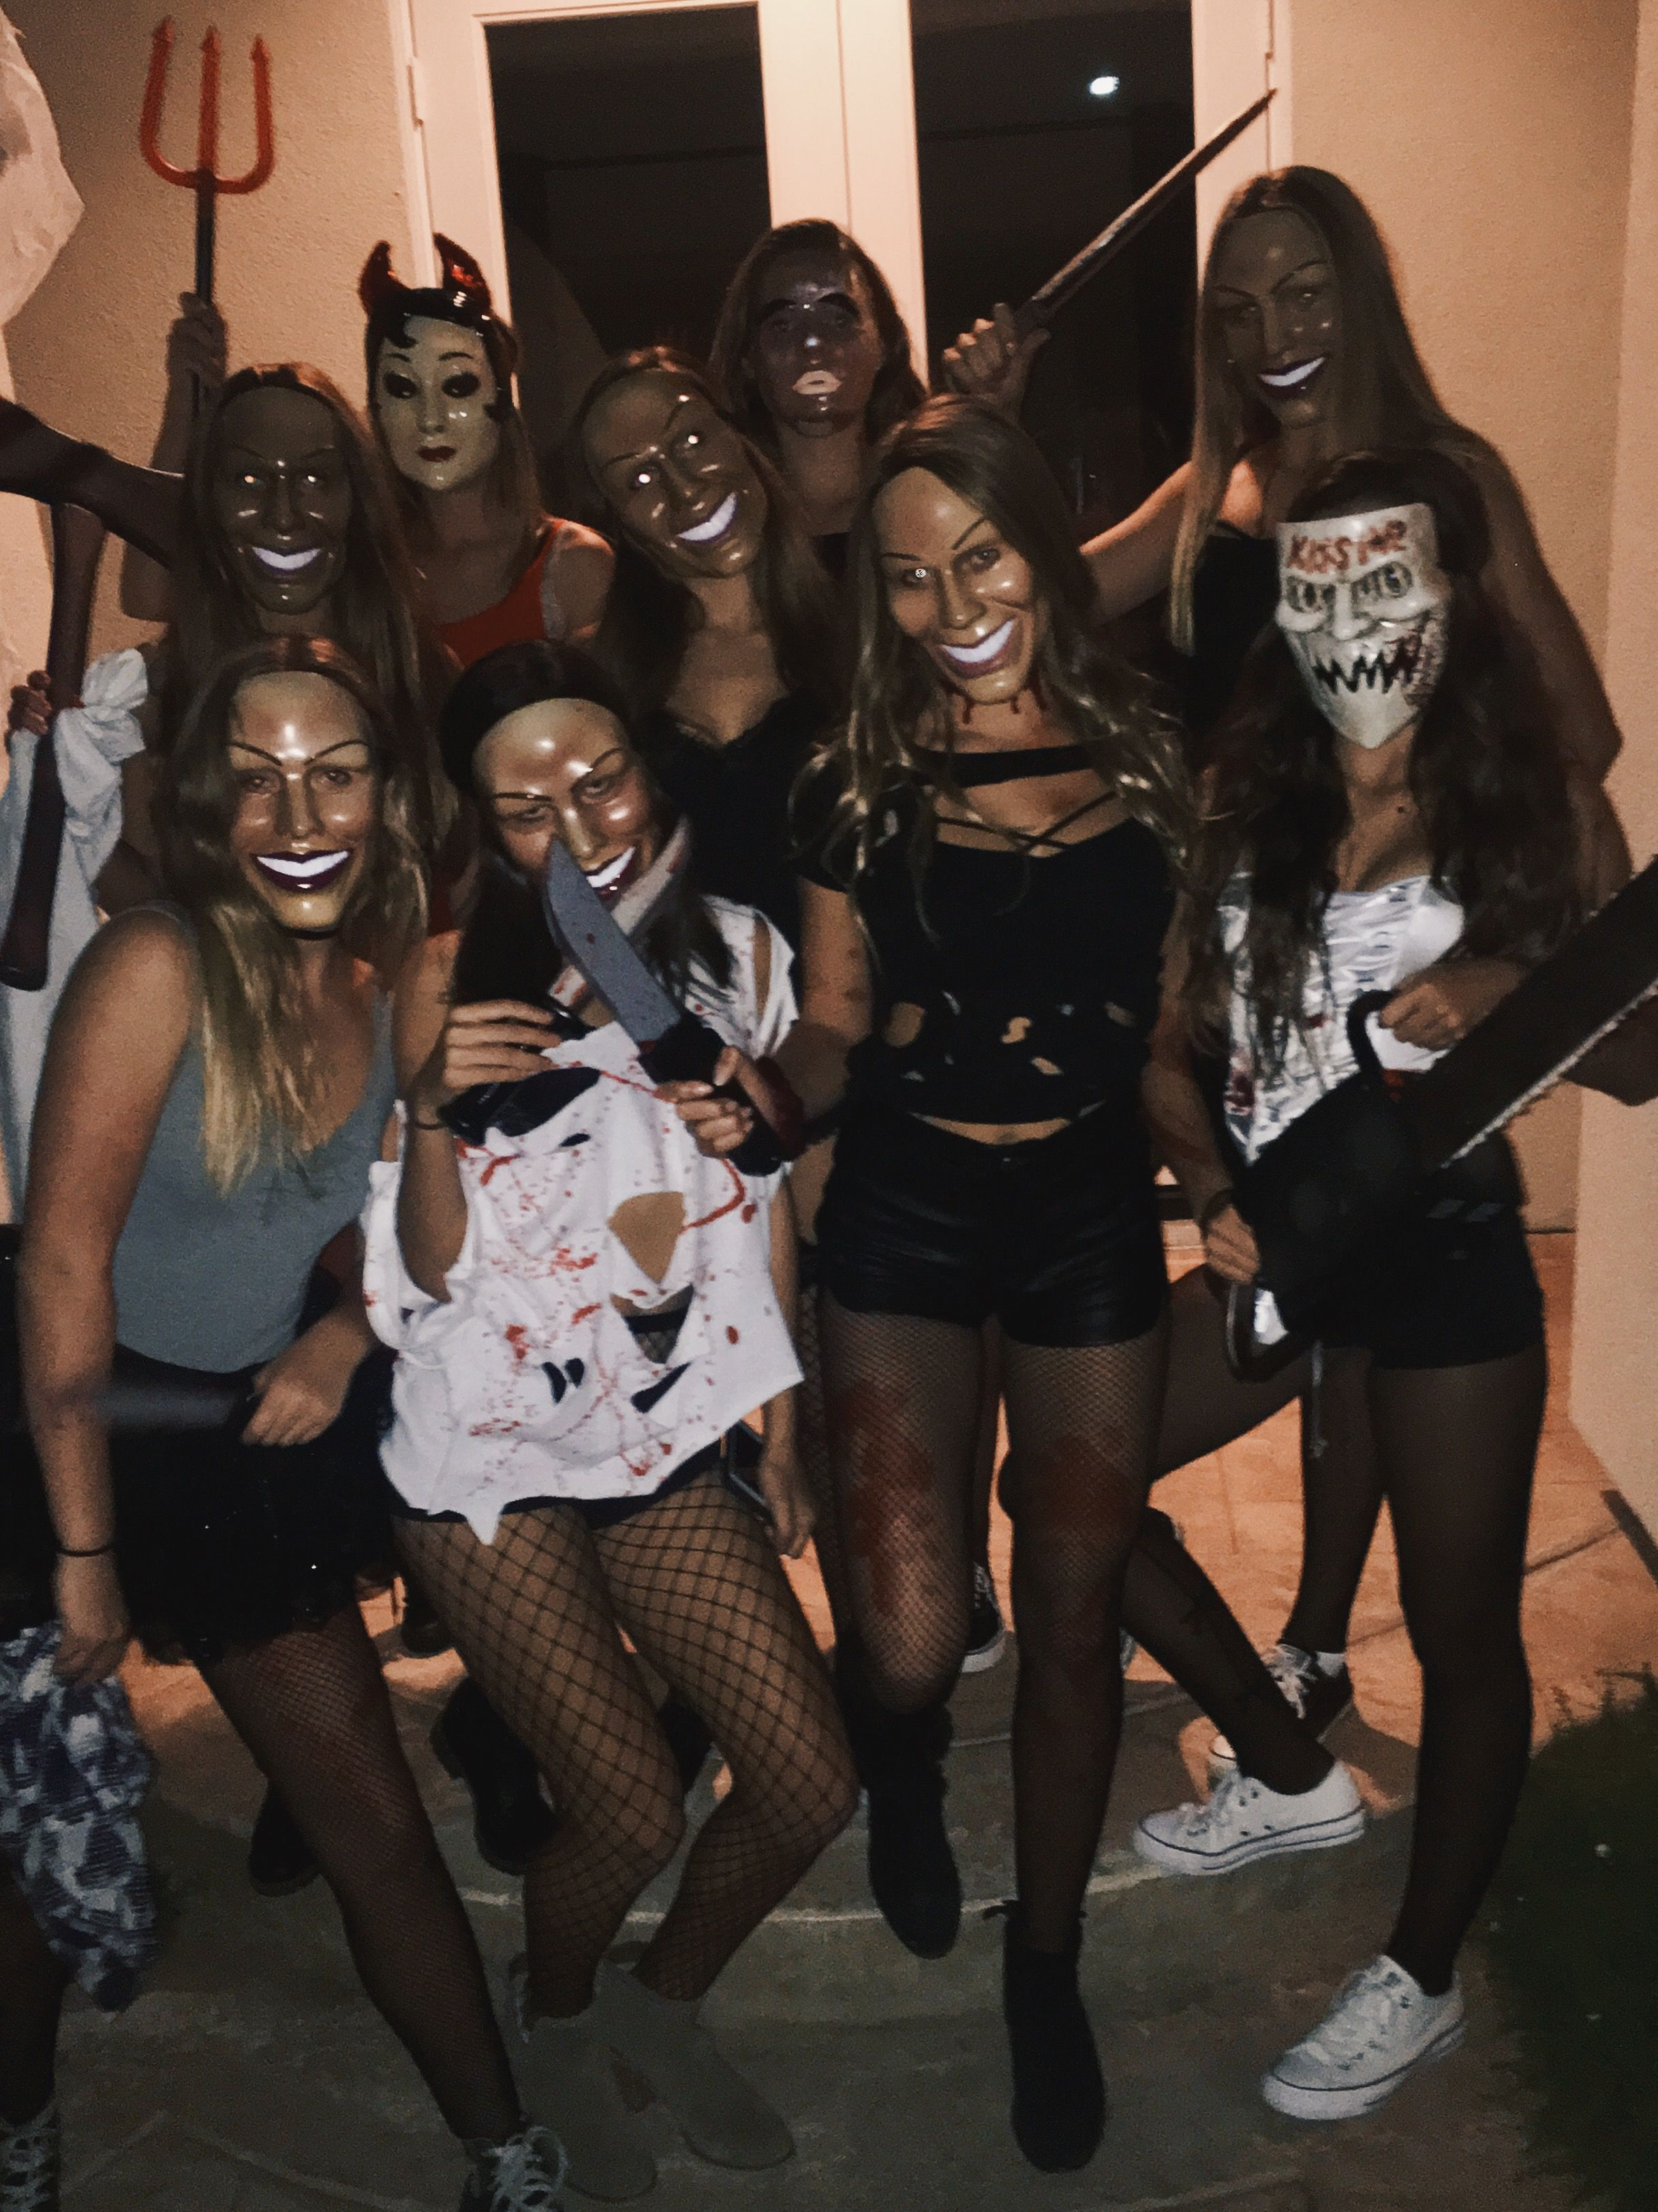 2019 S Hottest Halloween Costume Ideas Perfect For A College Party Page 5 Of 31 Easy Hairstyles In 2020 Diy Halloween Costumes For Women Halloween Outfits Cute Halloween Costumes